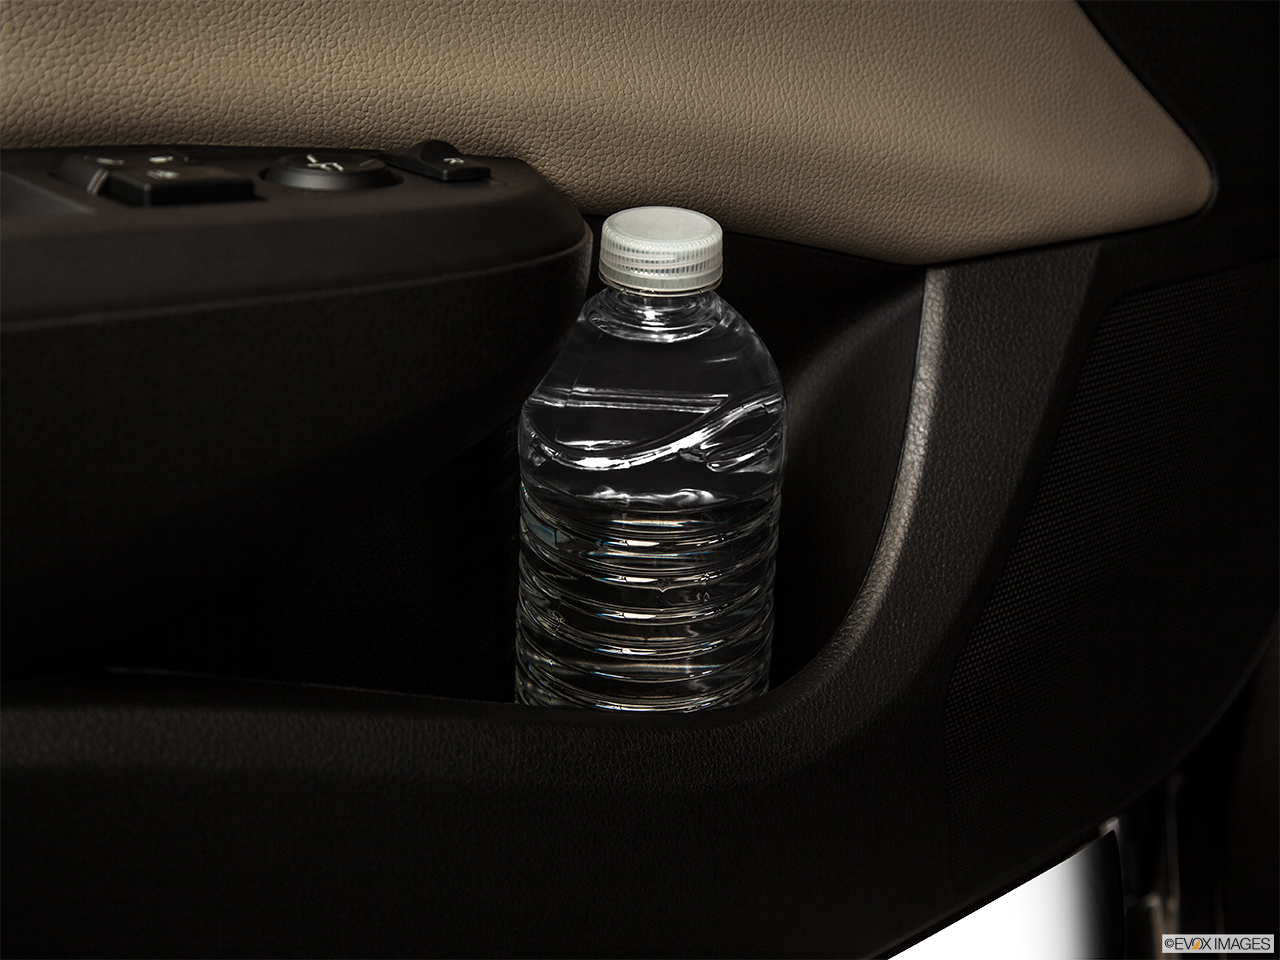 2014 Acura ILX Hybrid Base Cup holder prop (tertiary).